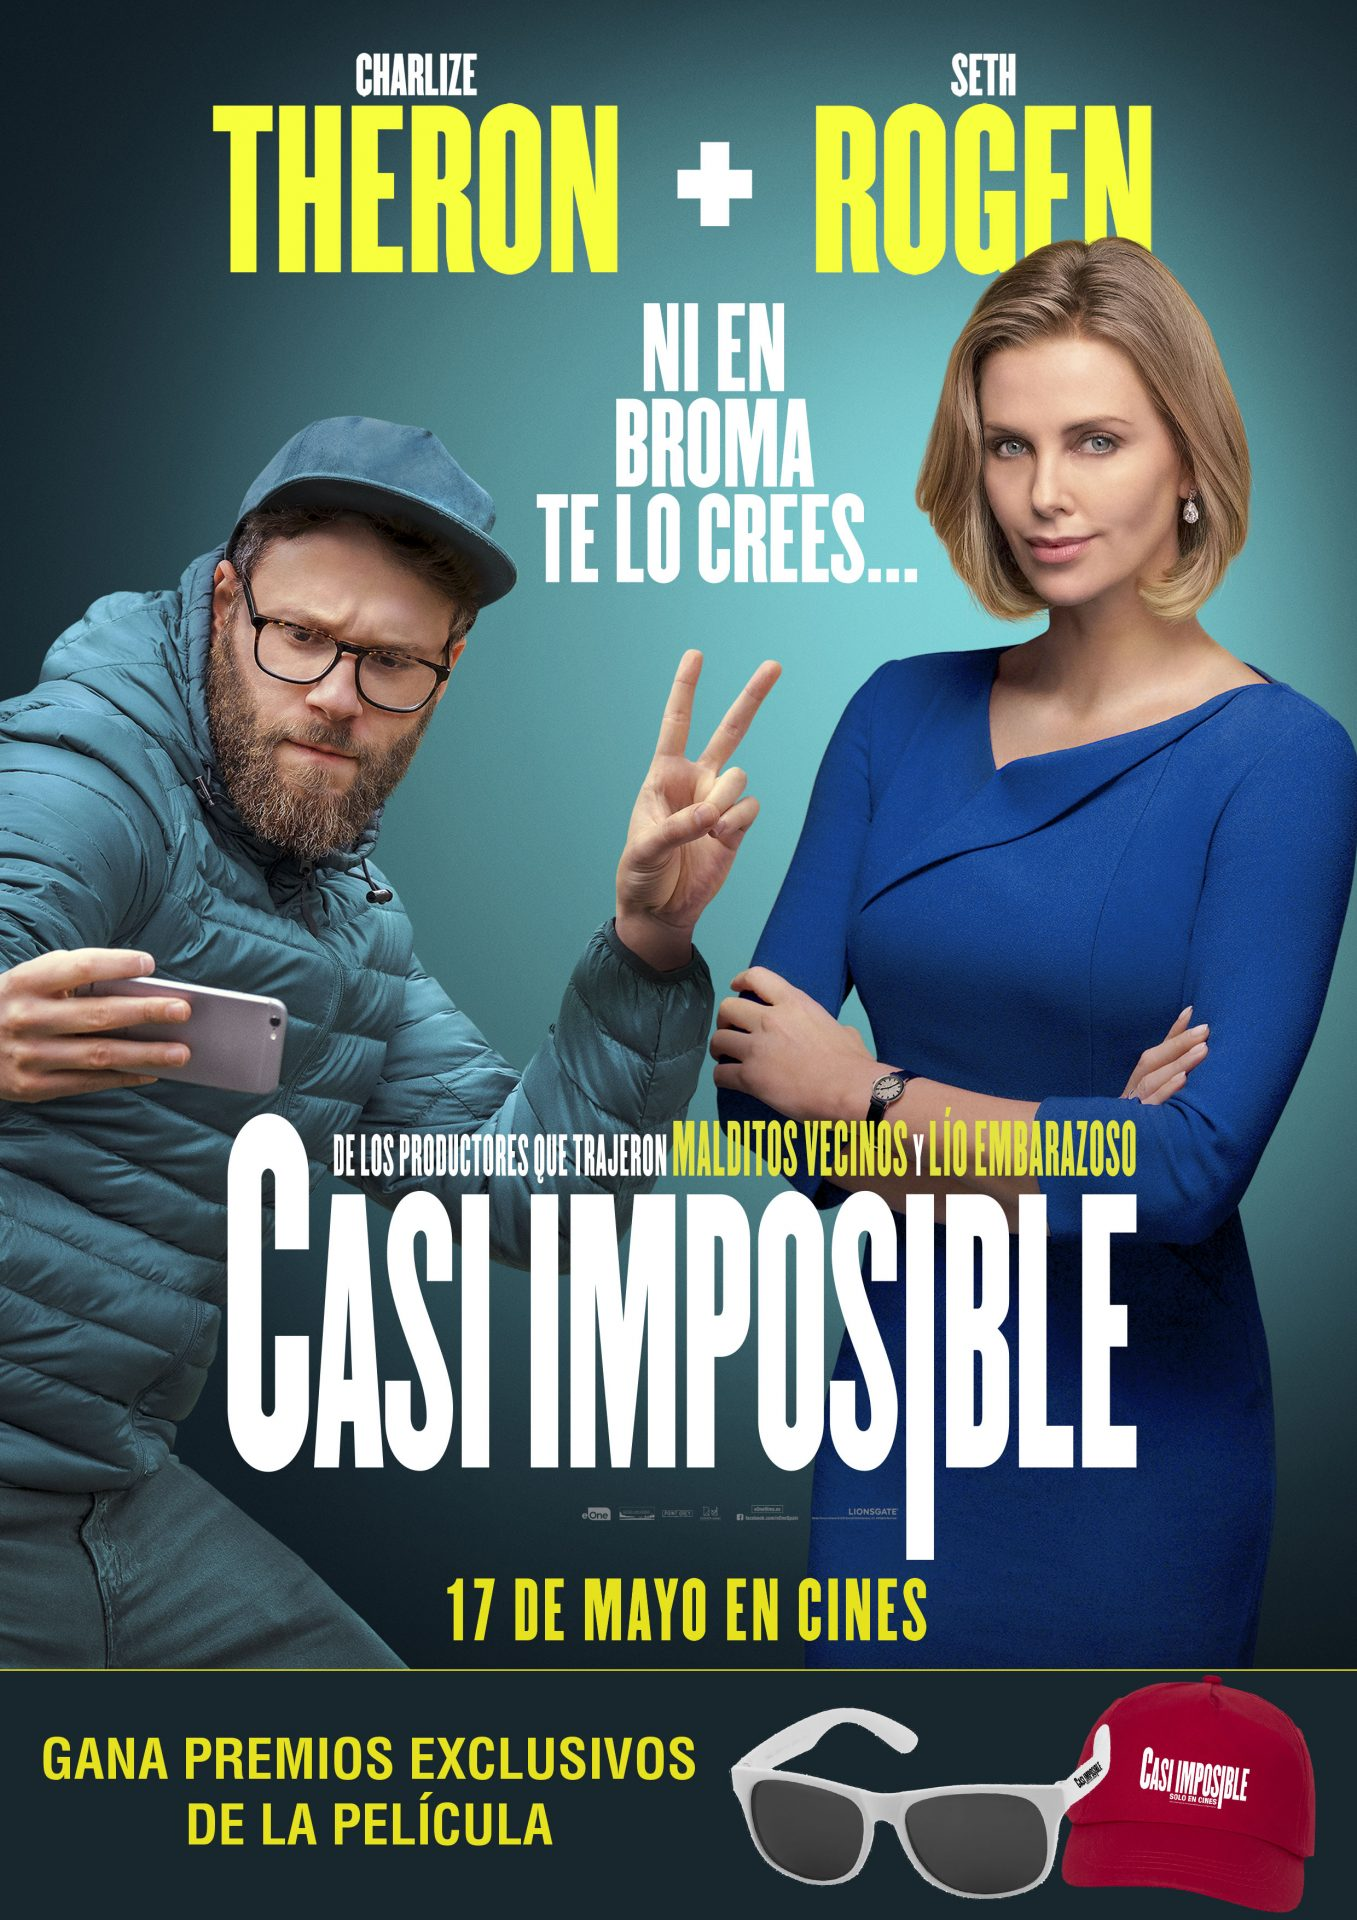 Image result for SORTEO CASI IMPOSIBLE GAFAS